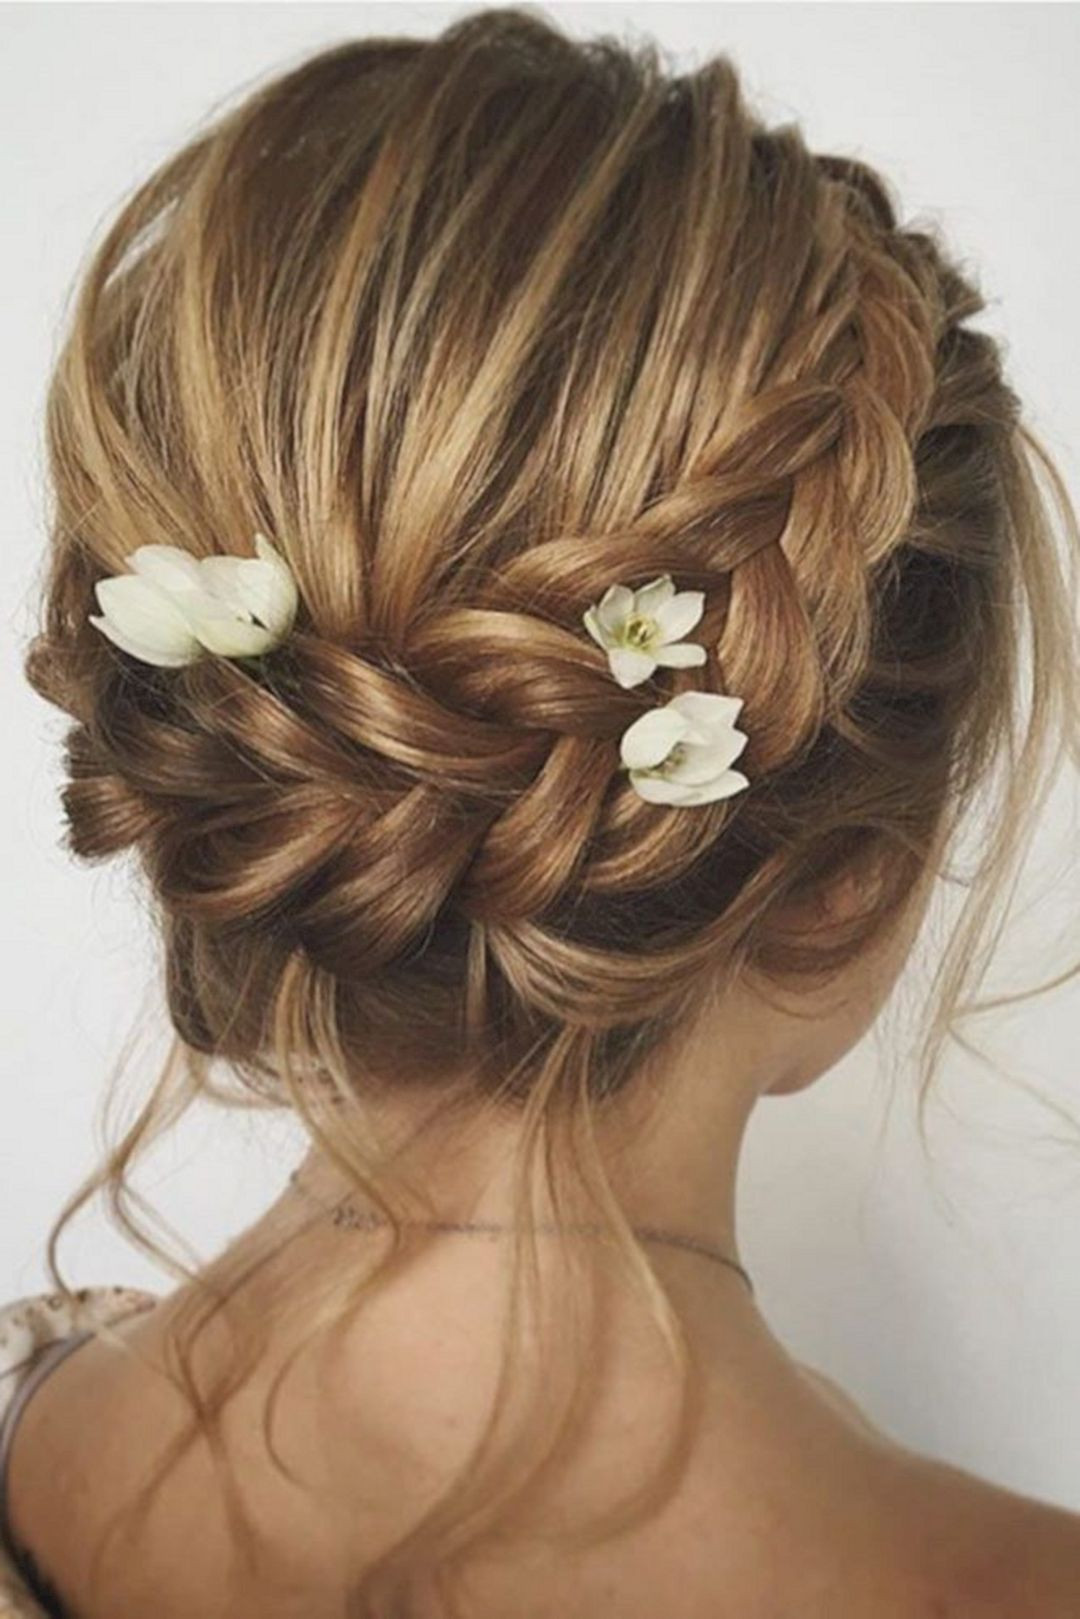 Bridesmaid Hairstyles  Wedding Bridesmaid Hairstyles for Short Hairs – OOSILE